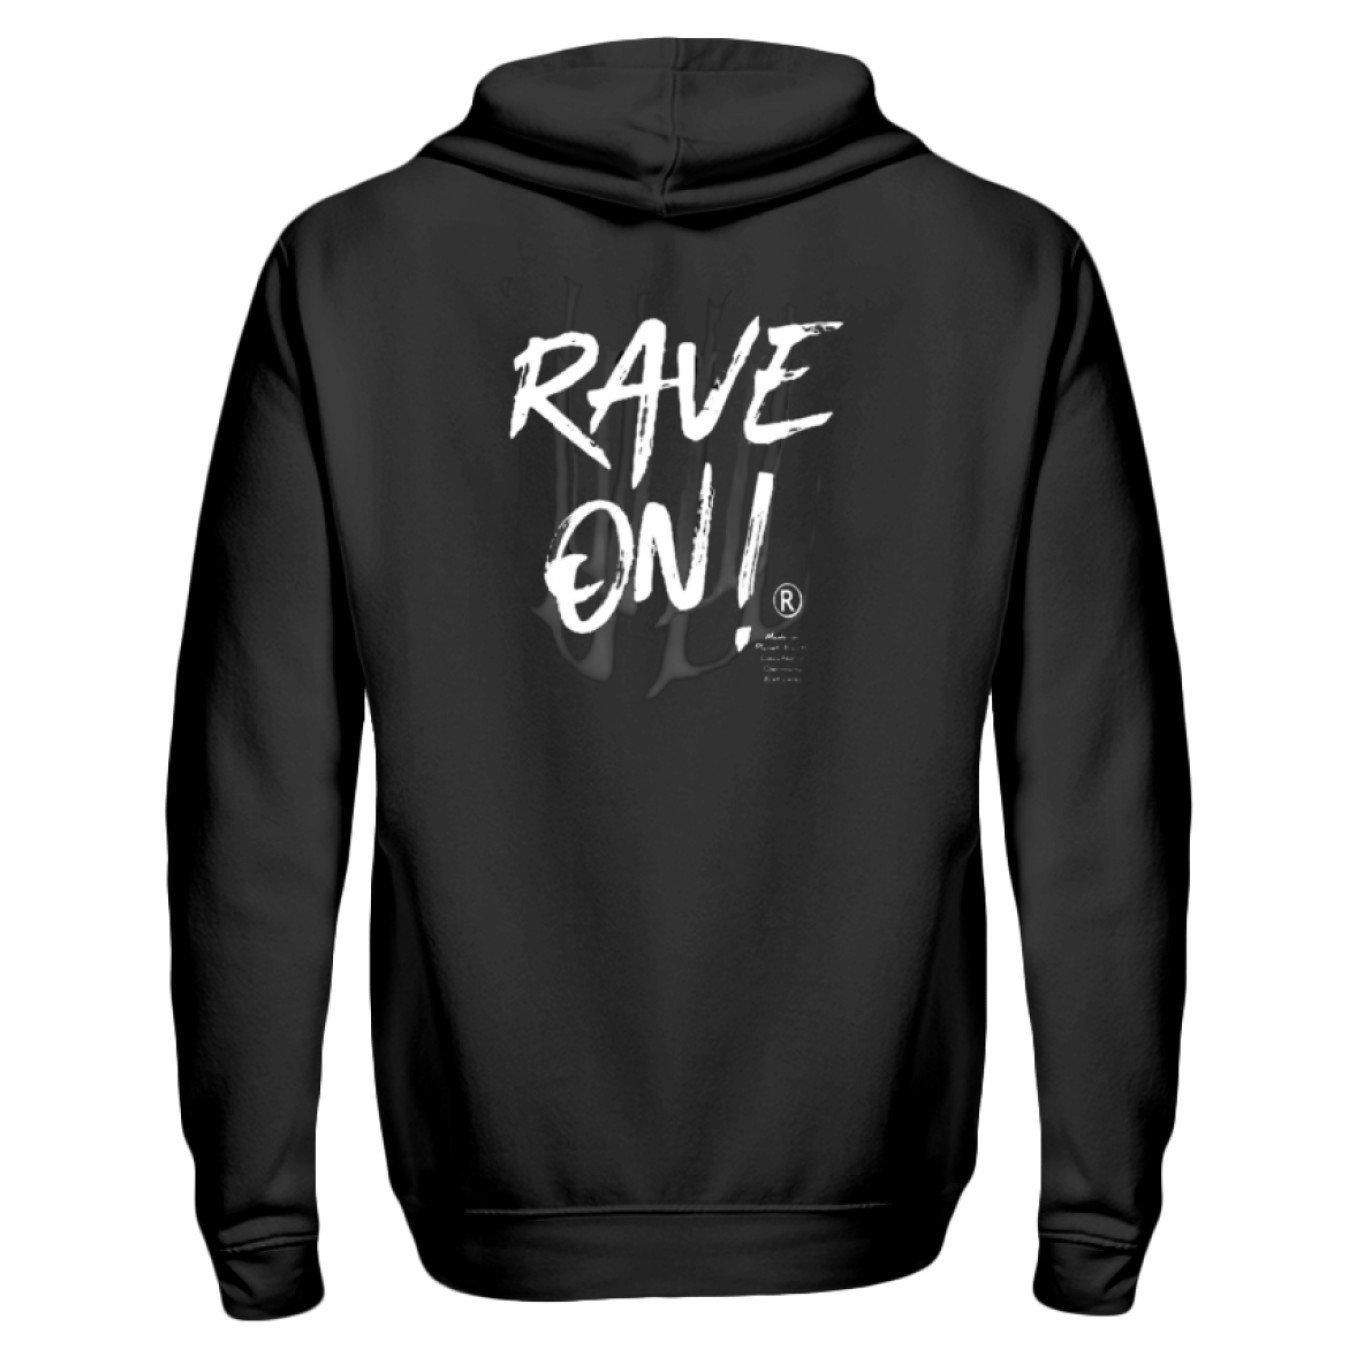 Rave On!® - Made On Planet Earth B2k20 - Zip-Hoodie-ZipperB-Black-S-Rave-On! I www.rave-on.shop I Deine Rave & Techno Szene Shop I boy hoodie, brand, damen hoodie, Design - Rave On!® - Made On Planet Earth B2k20, girl hoodie, girls hoodie, herren hoodie, herren pullover, hoodie, hoodies, hoody, hoodys, kapuze, kapuzenpullover, madeonpr, marke, on, pullover, pullover mit kapuze, rave, raver, techno, unisex, unisex hoodie, unisex hoody, unisex kapuzenpullover, unisex pulli, unisex pullover - Sexy